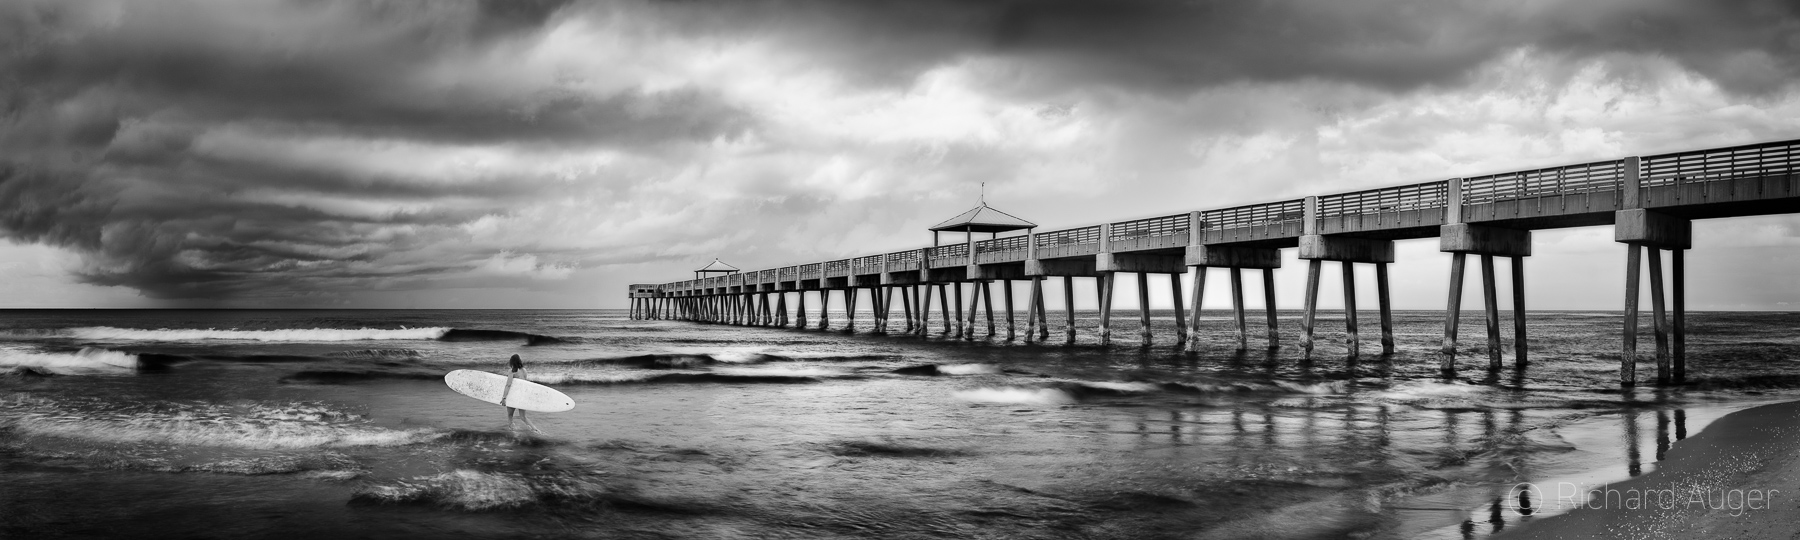 Juno Beach Pier, Florida, Palm Beach, Surfer Girl, Storm, Photograph, Photographer, Ocean, Waves, black and white, panorama